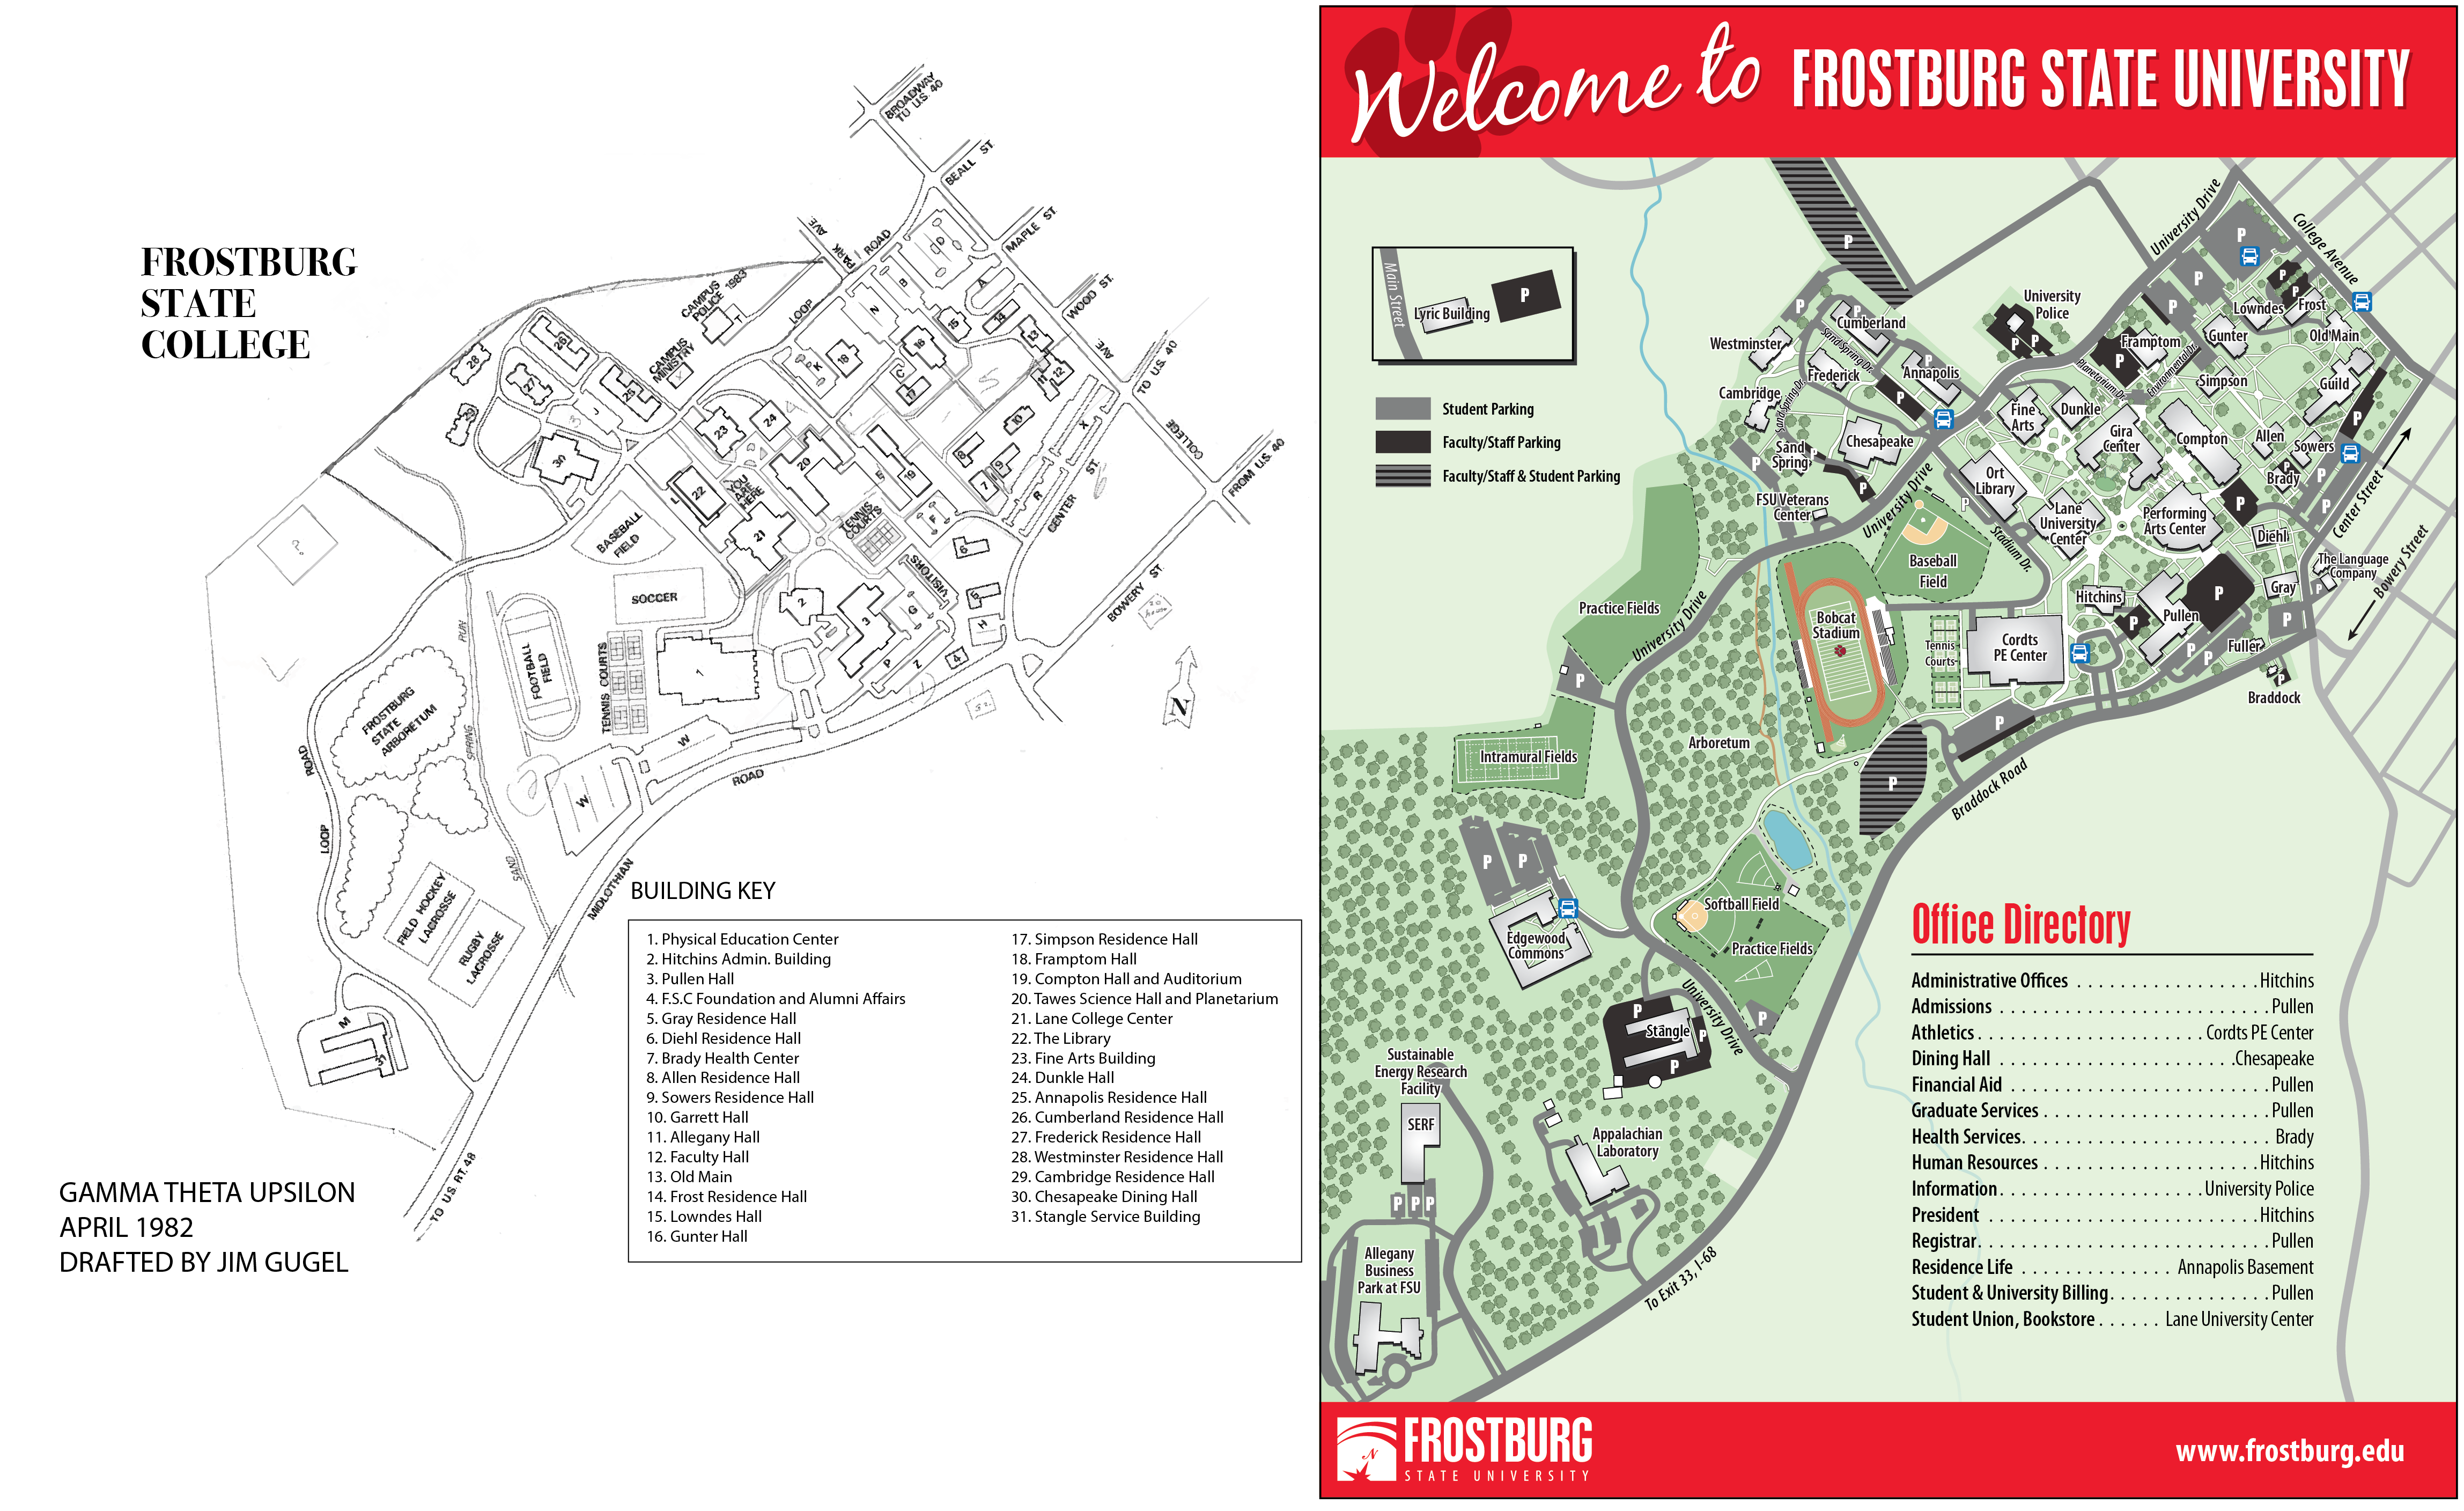 A campus map from 1983, left, was archived in the Lewis J. Ort Library and has been rotated to reflect a similar orientation to the modern campus map, seen at right. The arboretum, where Charlton was discovered, lies at the left of each map, with Sand Spring Run flowing vertically.